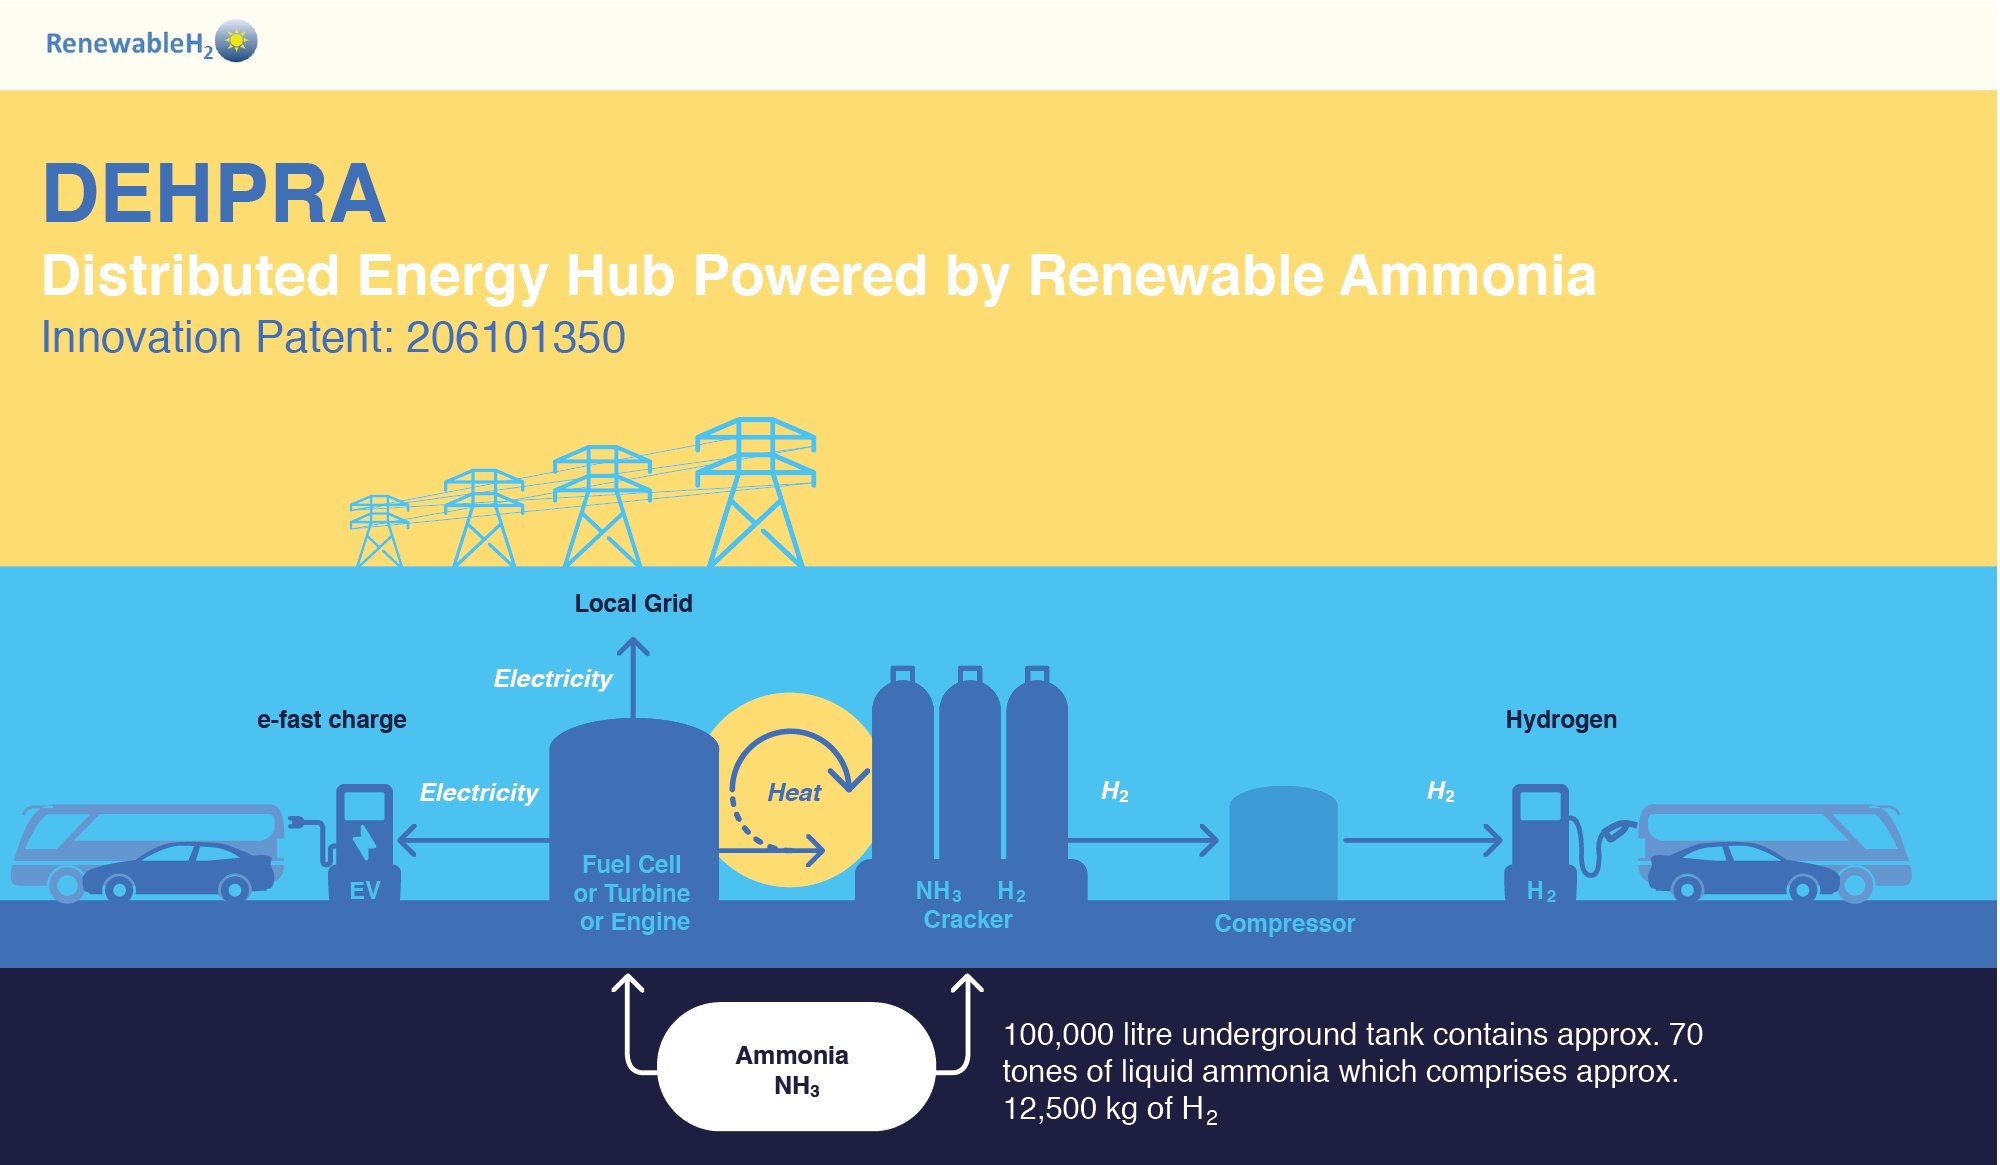 Want to help ship Australian solar and wind energy to provide clean energy to Asia?